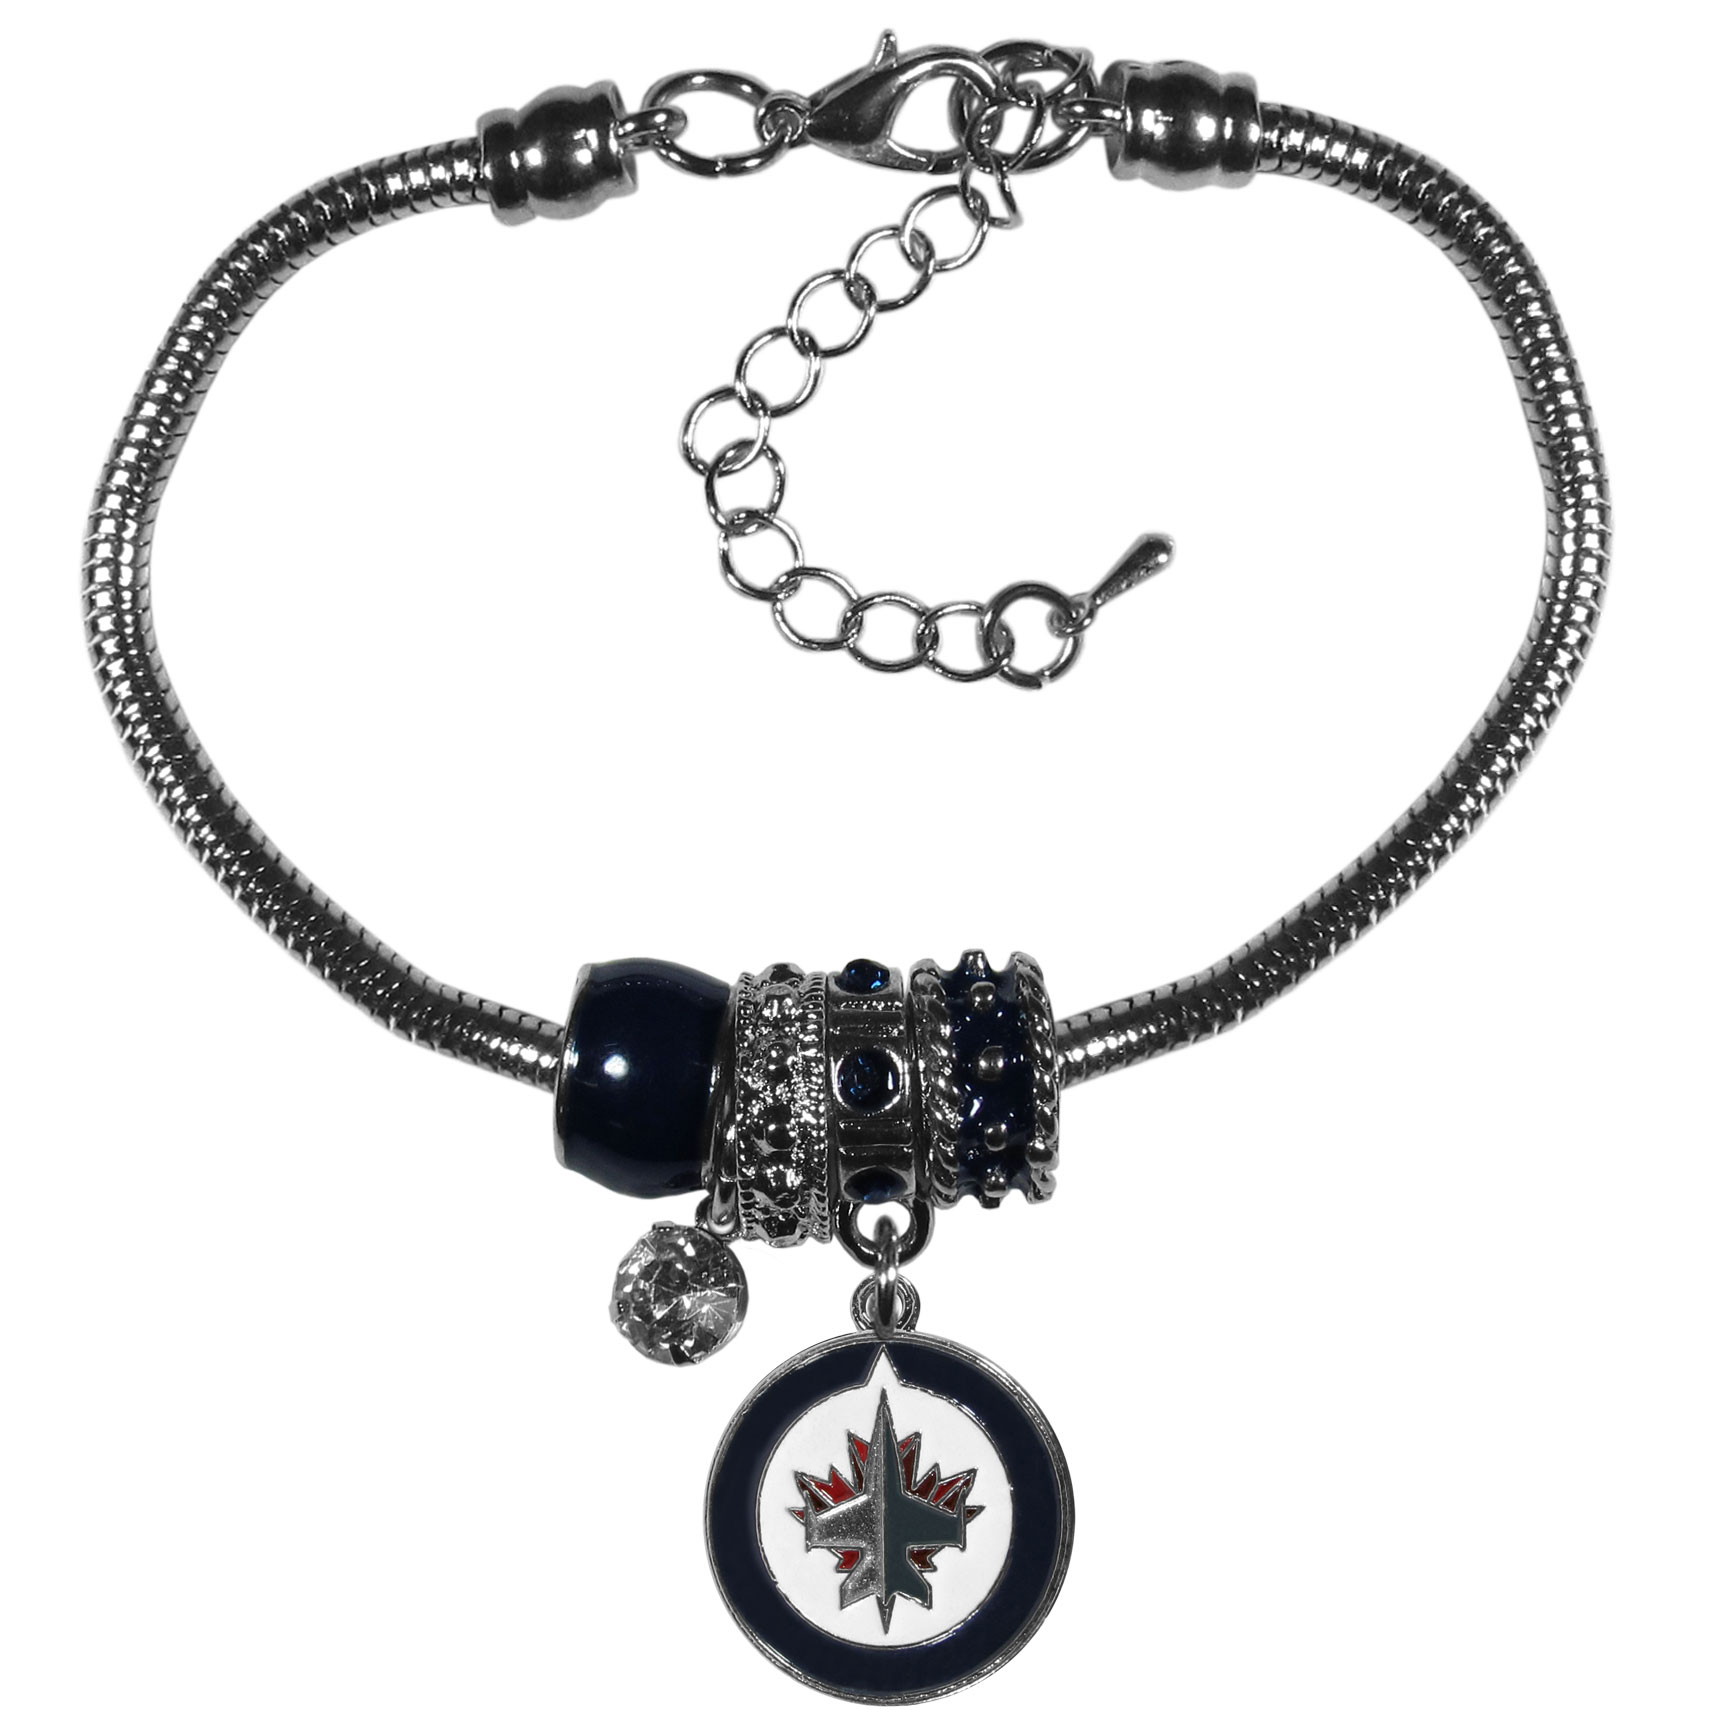 Winnipeg Jets™ Euro Bead Bracelet - We have combined the wildly popular Euro style beads with your favorite team to create our  Winnipeg Jets™ bead bracelet. The 7.5 inch snake chain with 2 inch extender features 4 Euro beads with enameled team colors and rhinestone accents with a high polish, nickel free charm and rhinestone charm. Perfect way to show off your team pride.